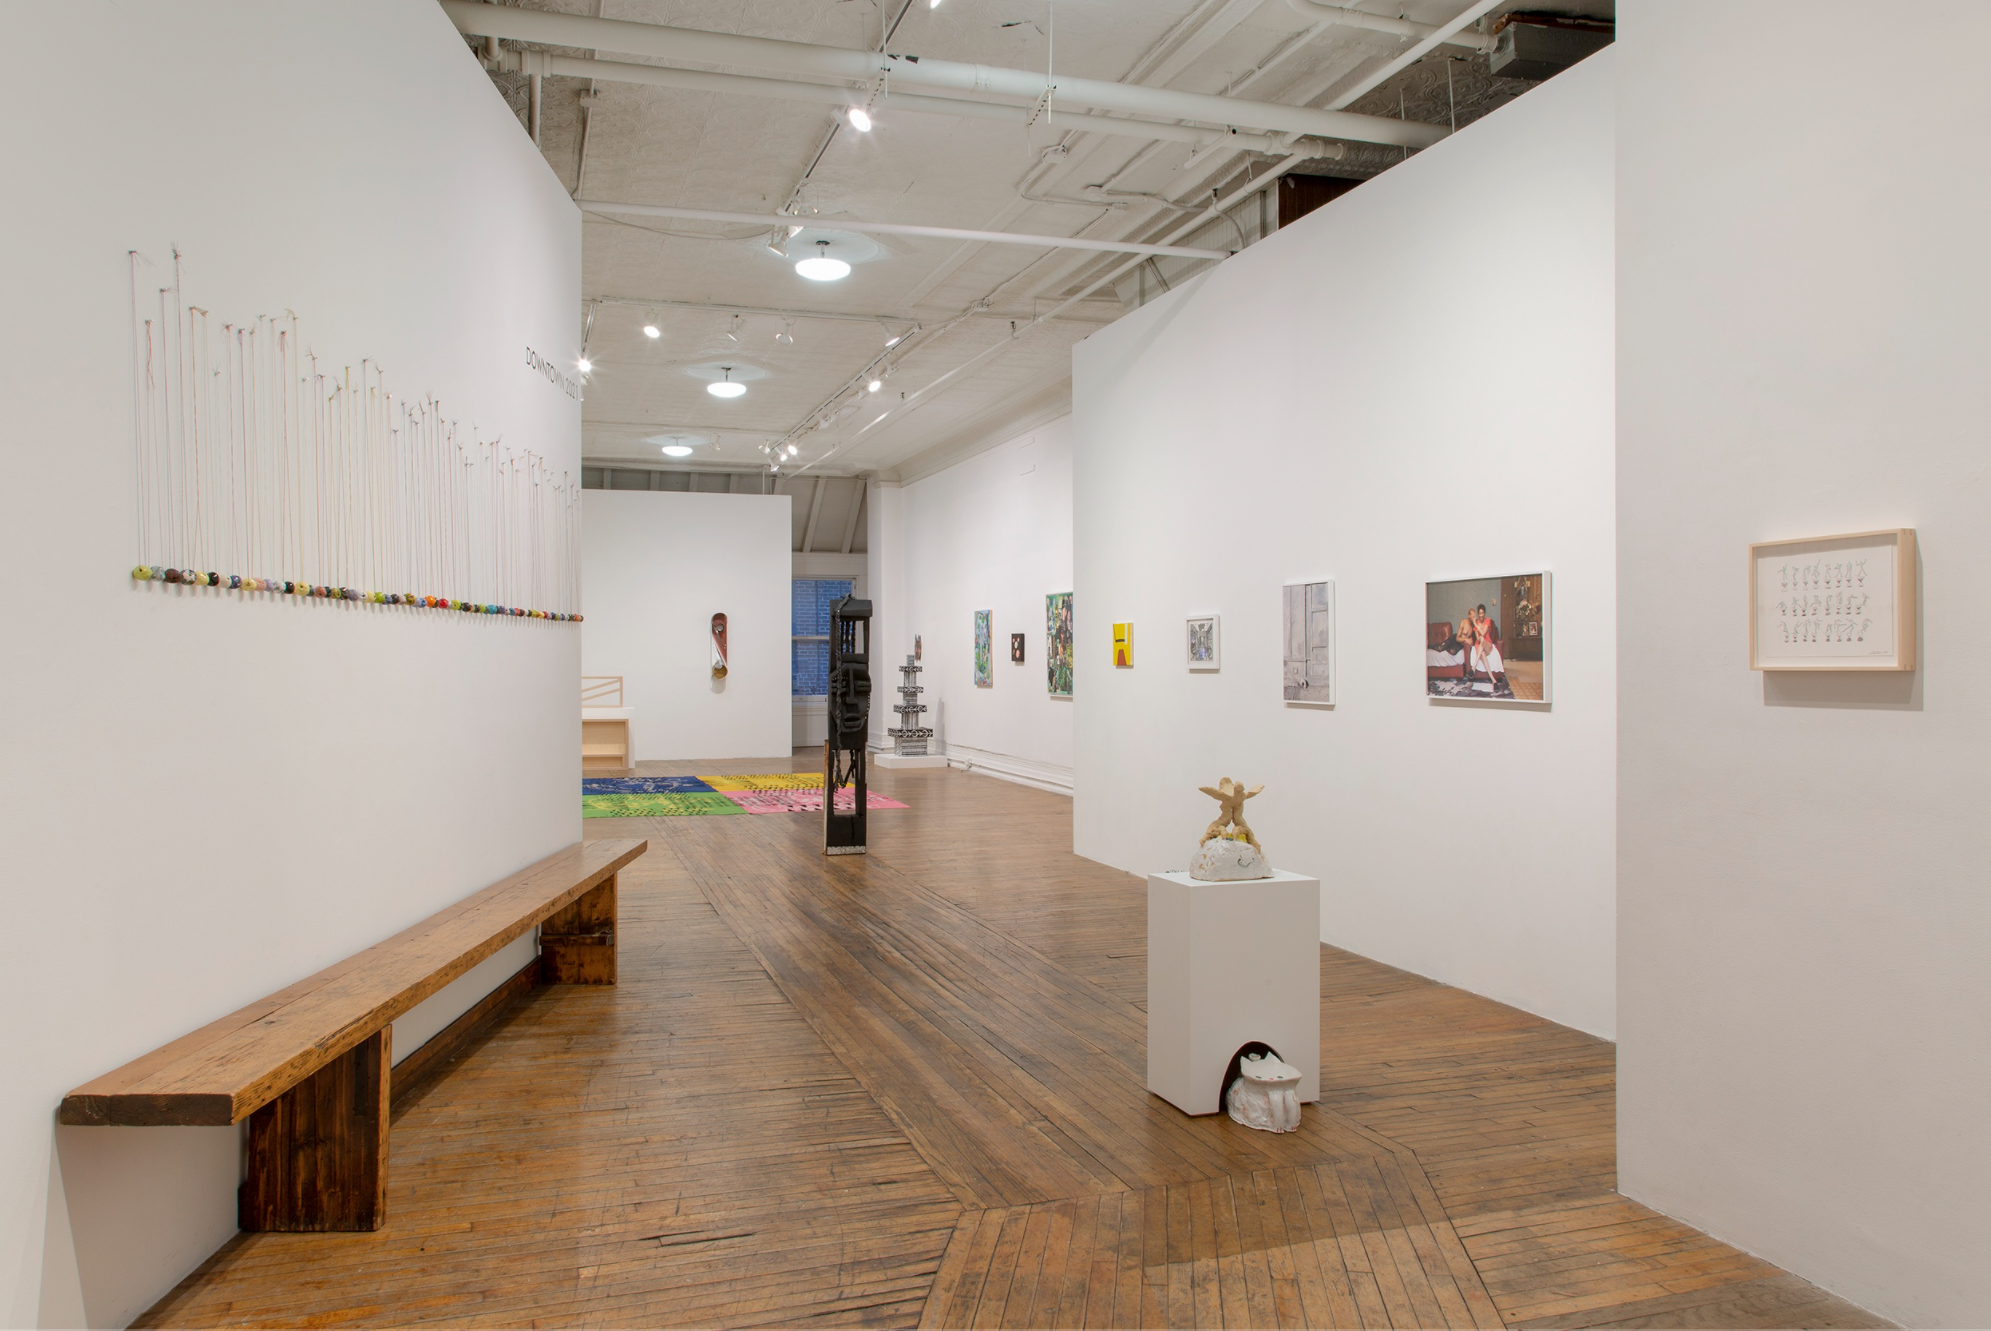 photo of gallery space with white walls and a wooden bench on the left wall